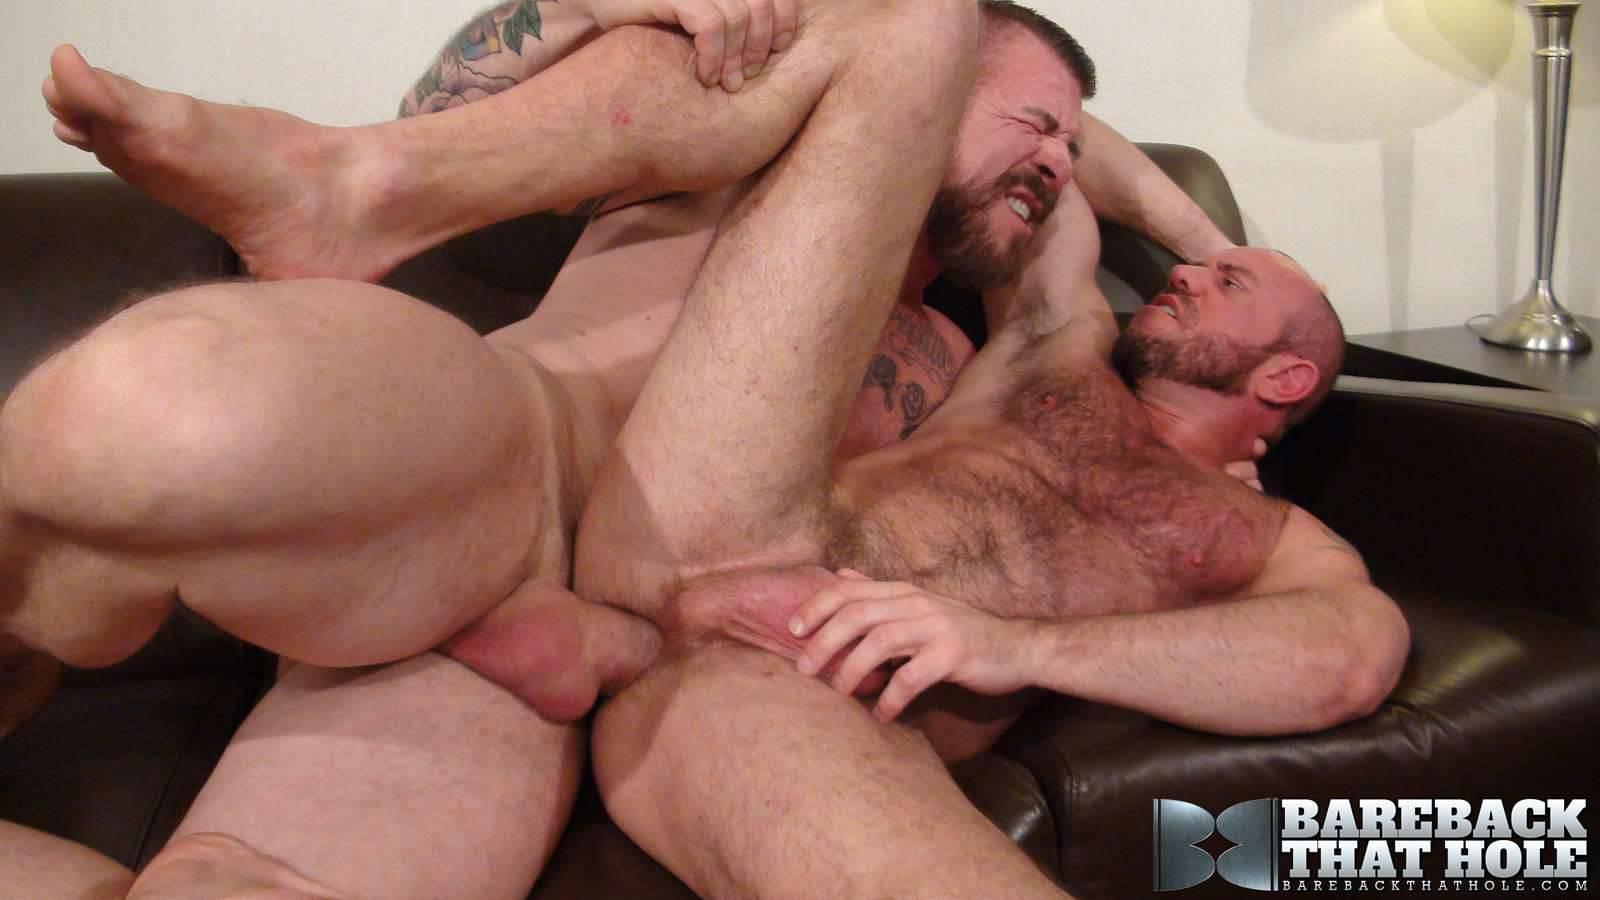 Bareback-That-Hole-Rocco-Steele-and-Matt-Stevens-Hairy-Muscle-Daddy-Bareback-Amateur-Gay-Porn-19 Hairy Muscle Daddy Rocco Steele Breeding Matt Stevens